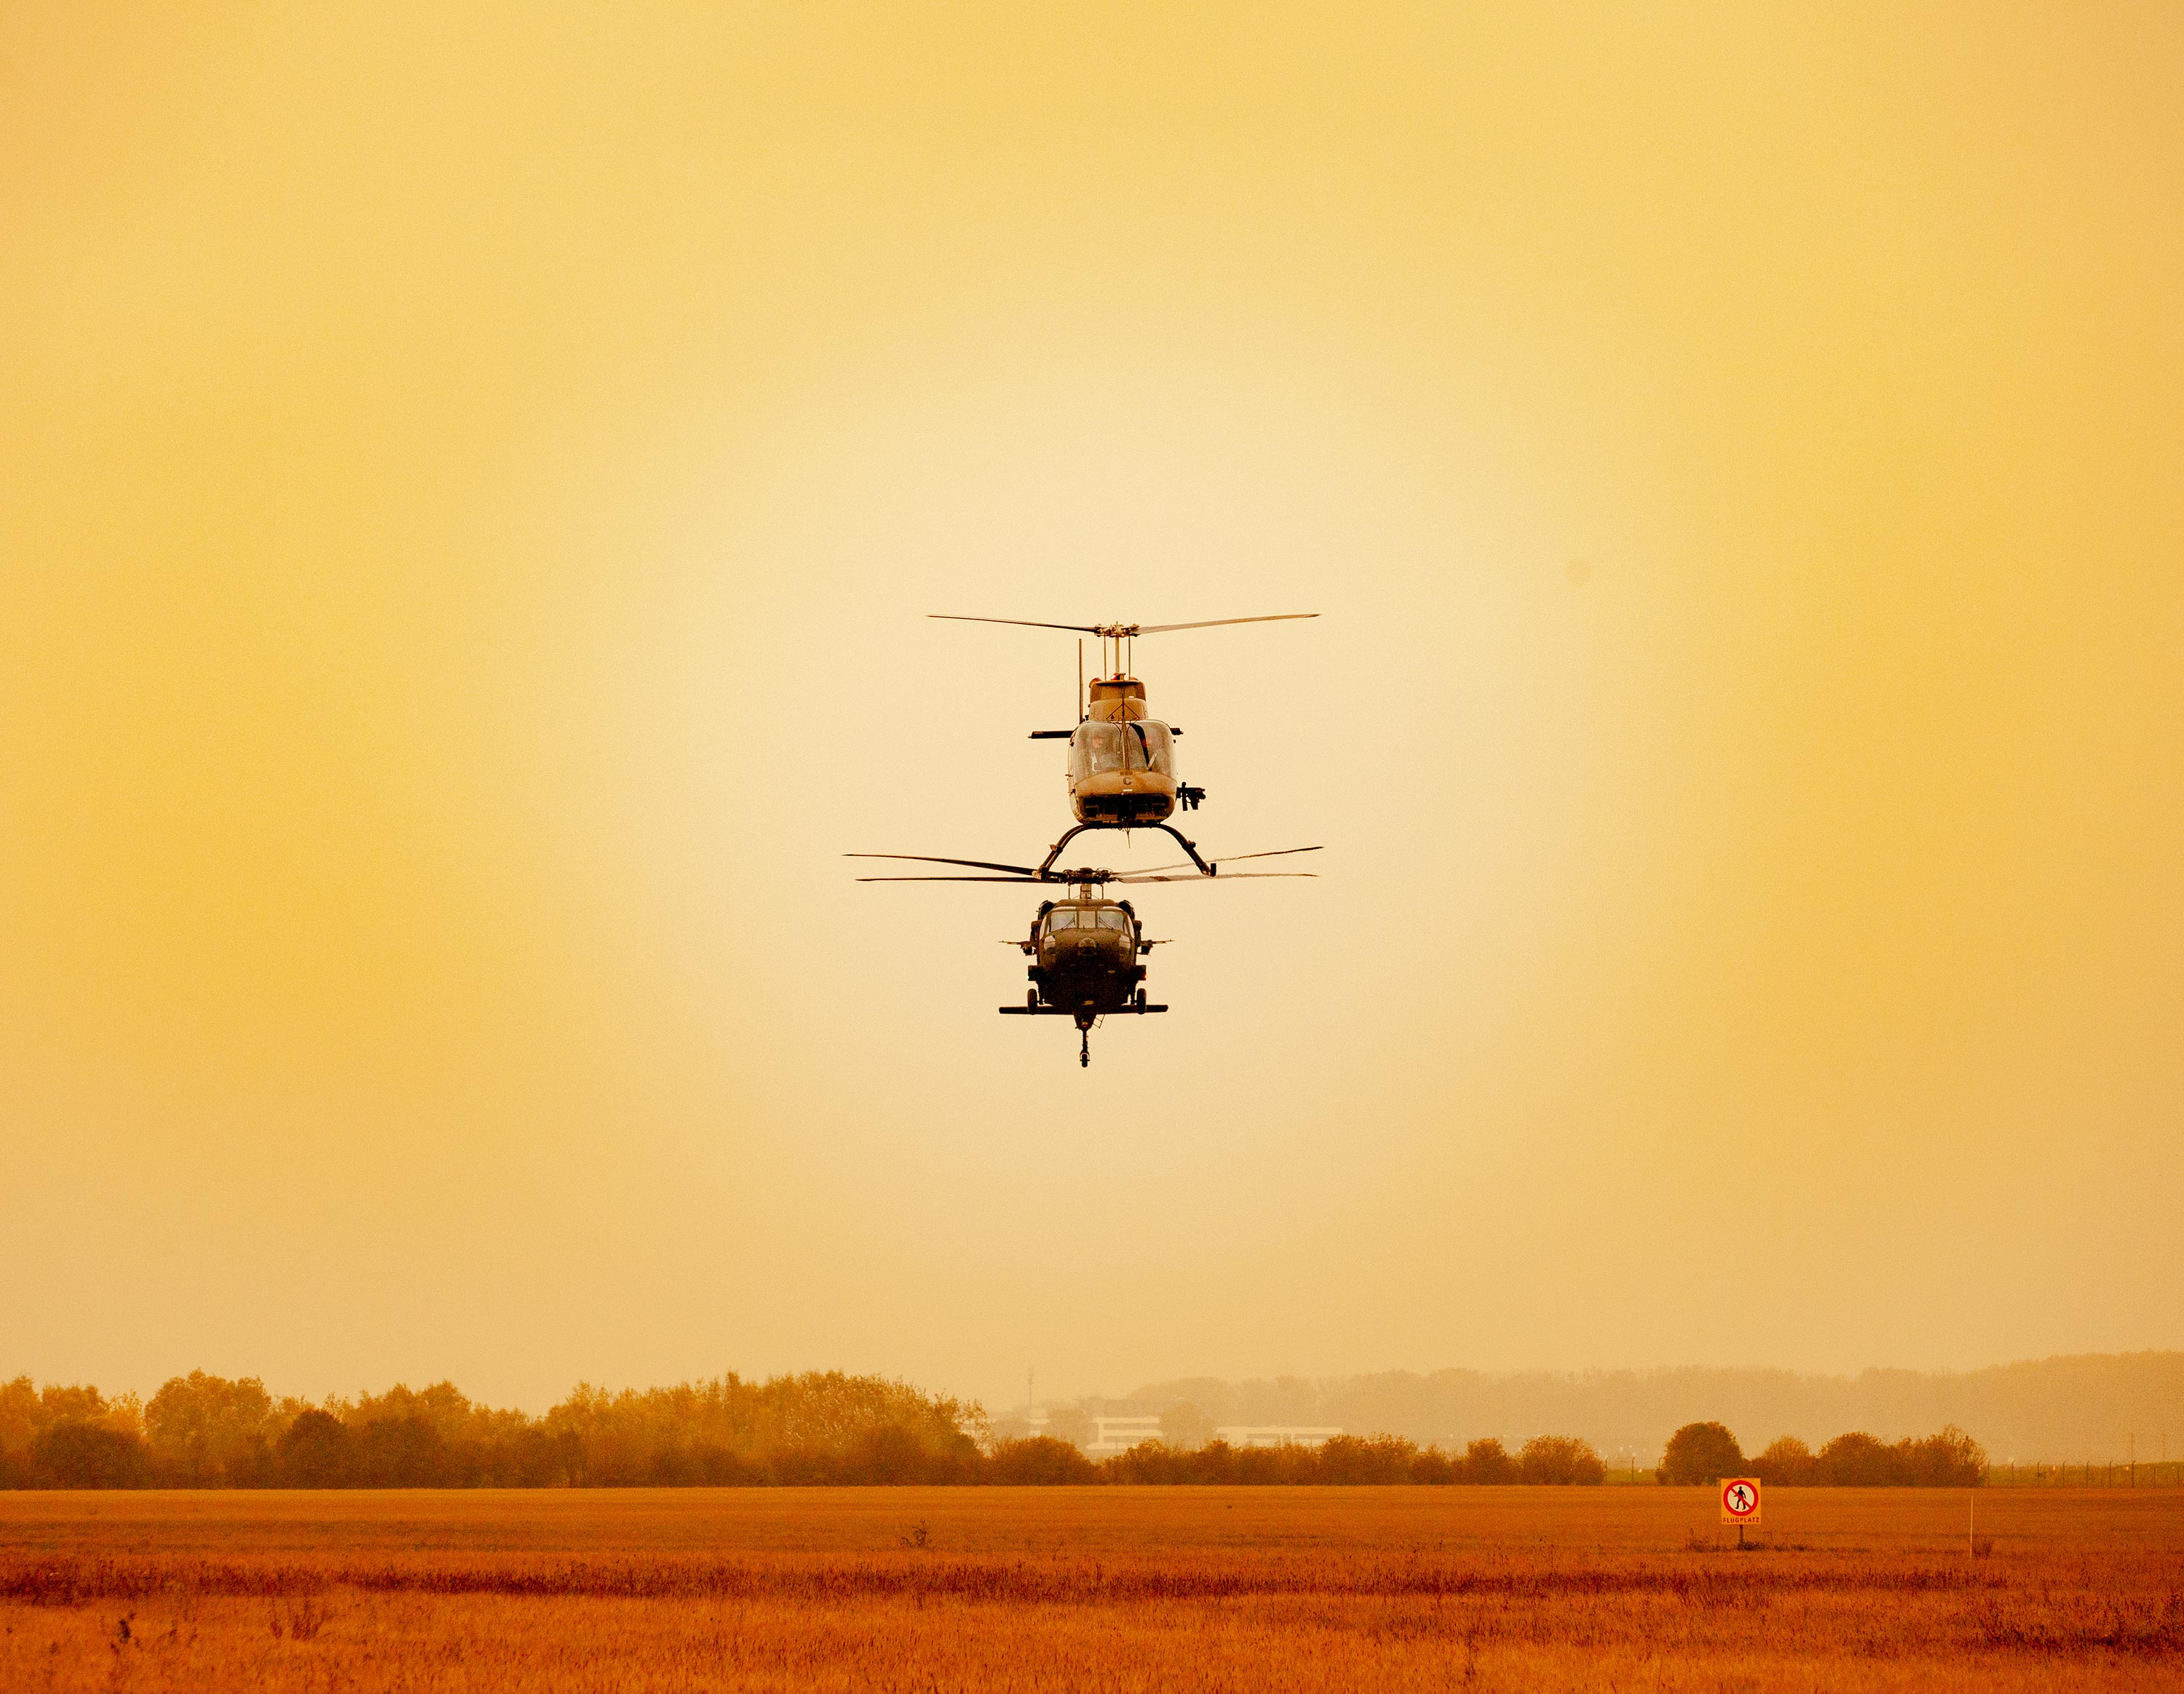 Two Black Hawk helicopters flying side by side on a sunset during a 360 video production.